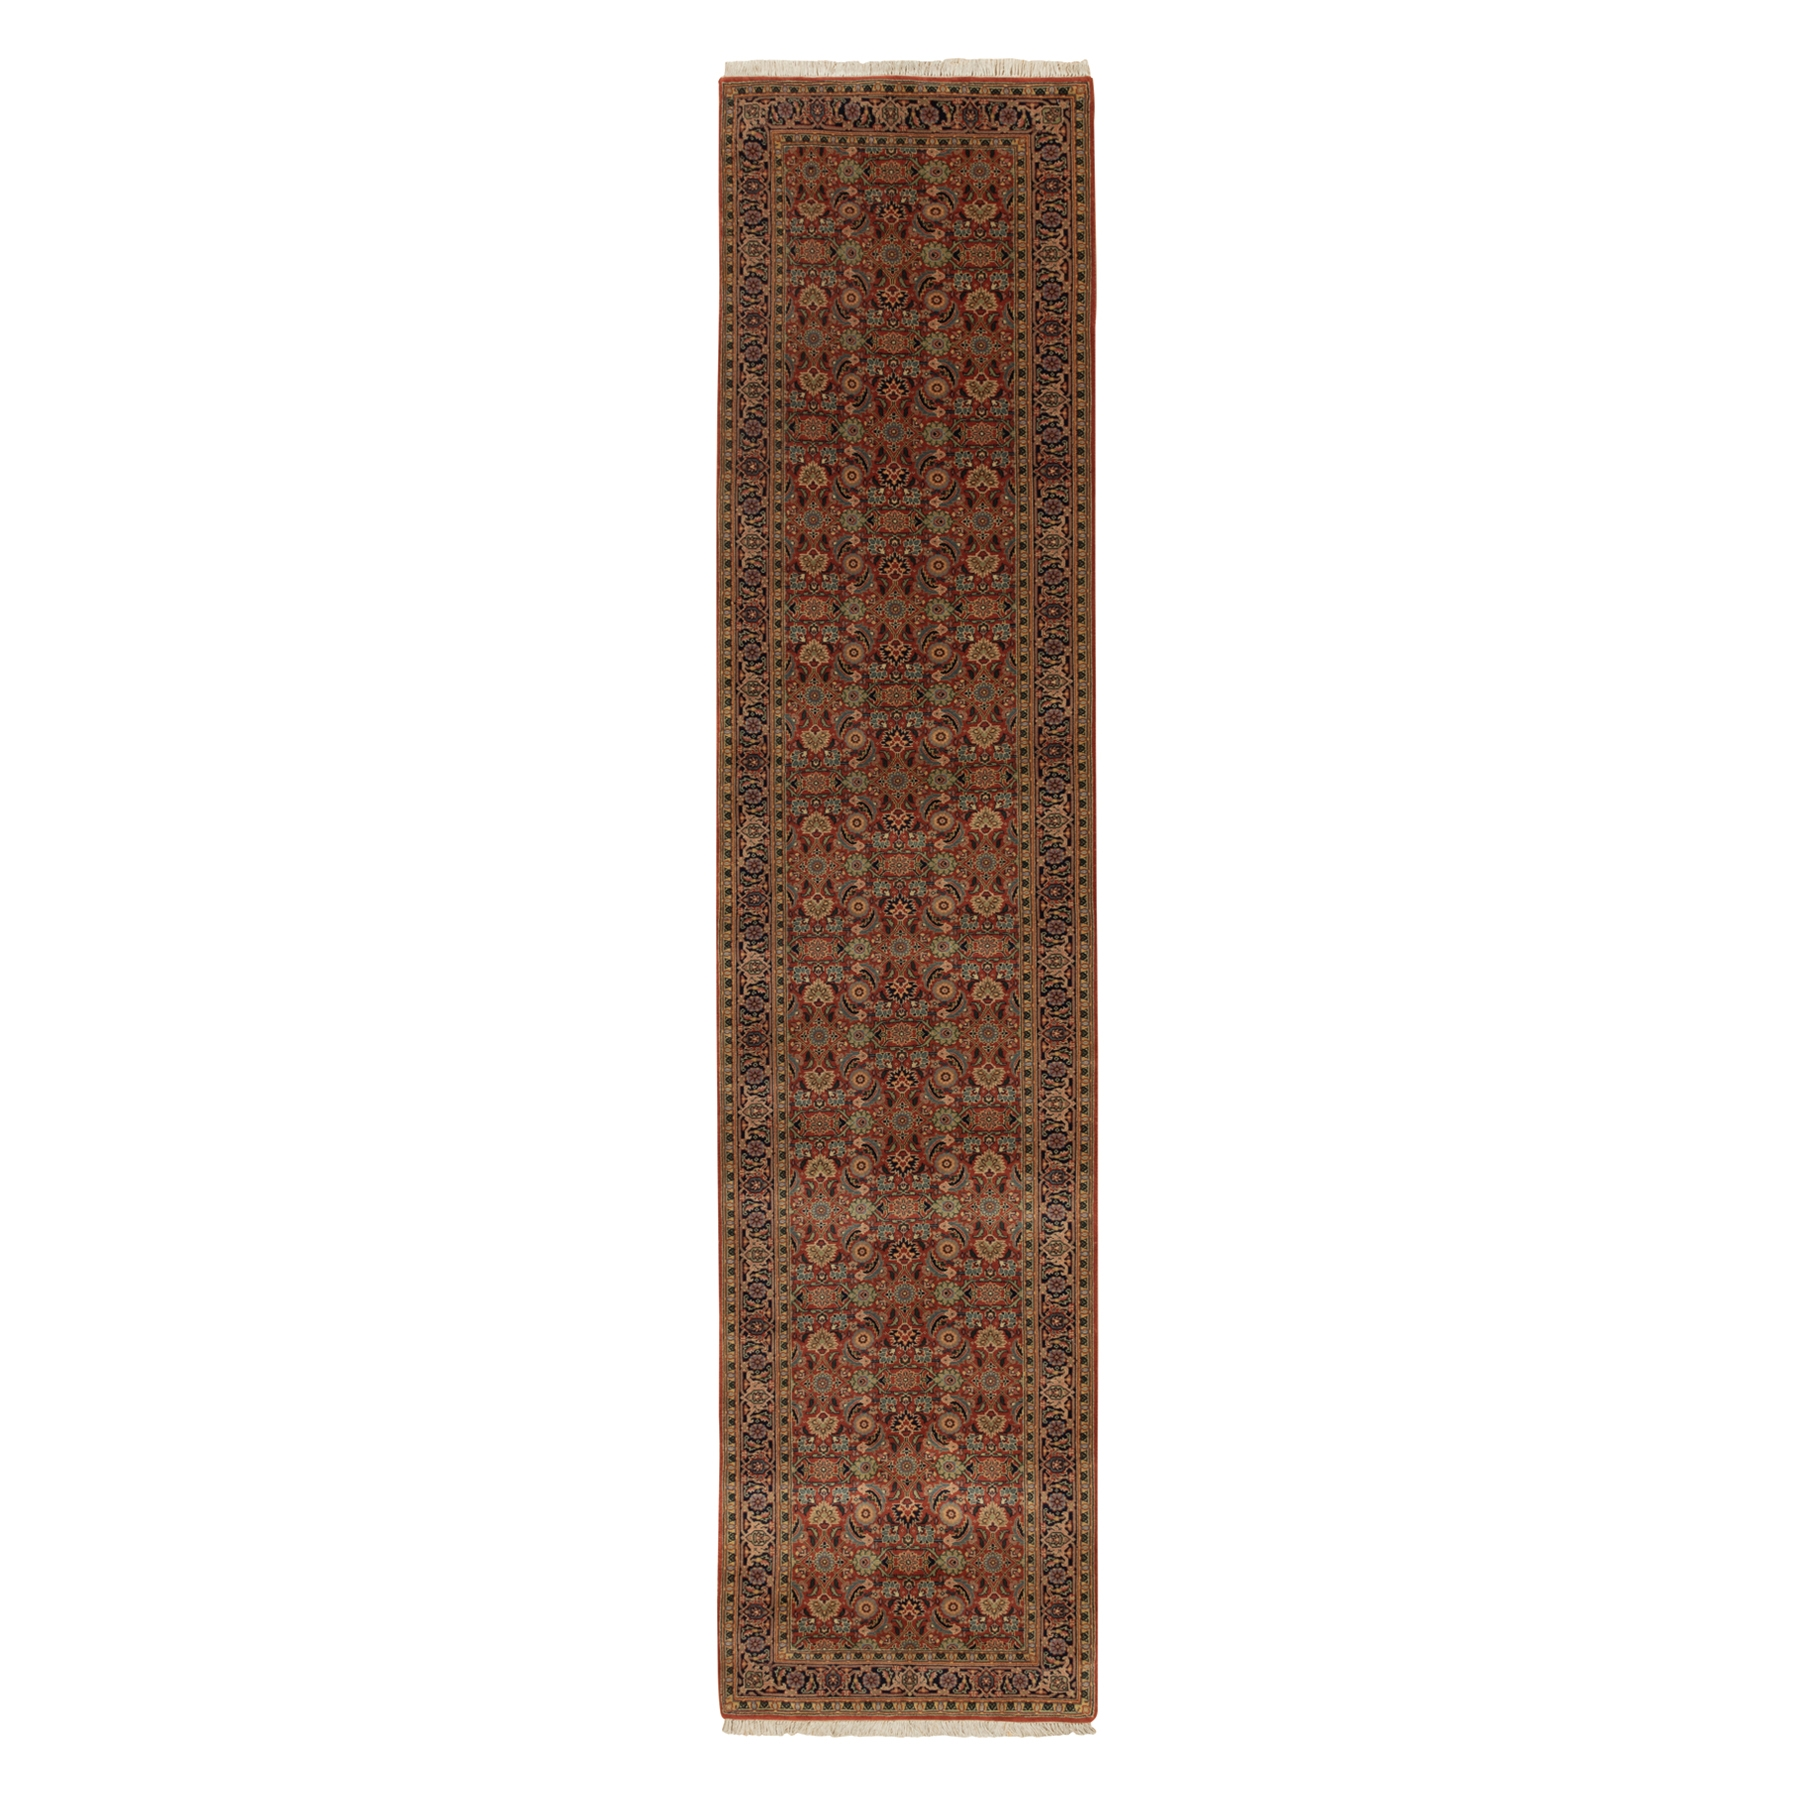 Pirniakan Collection Hand Knotted Red Rug No: 1117286